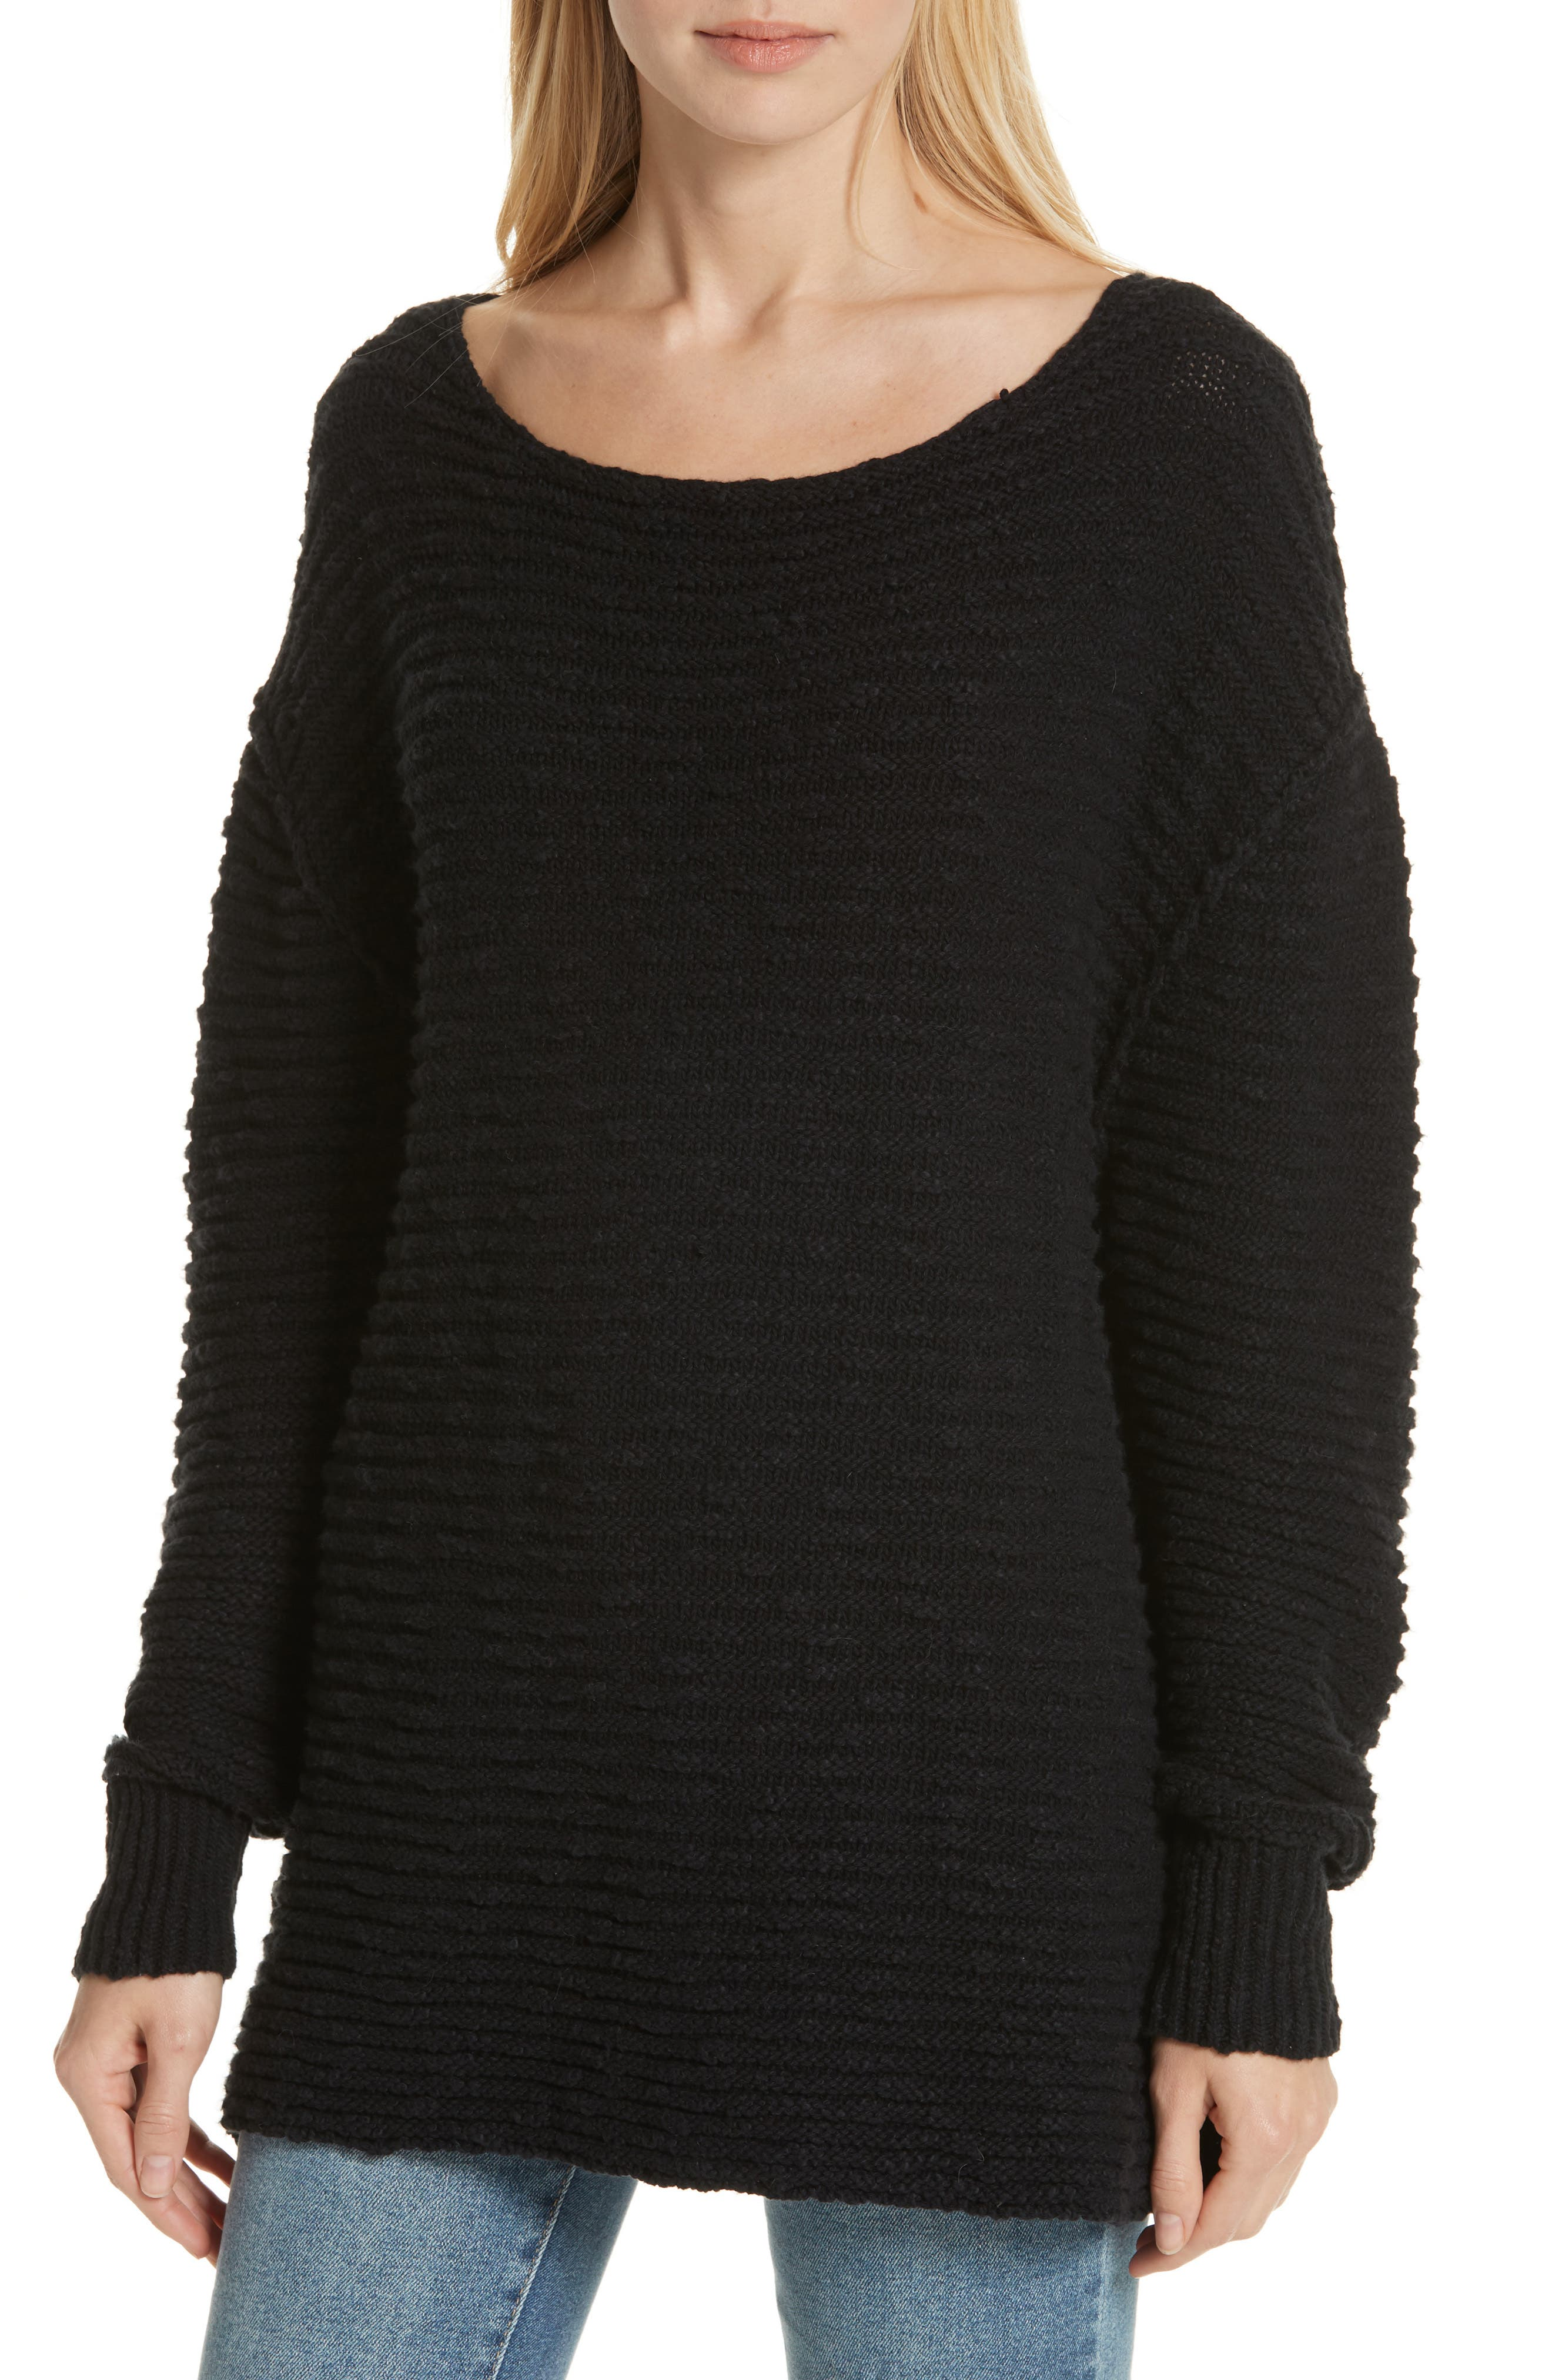 Menace Solid Tunic Sweater,                             Alternate thumbnail 4, color,                             001